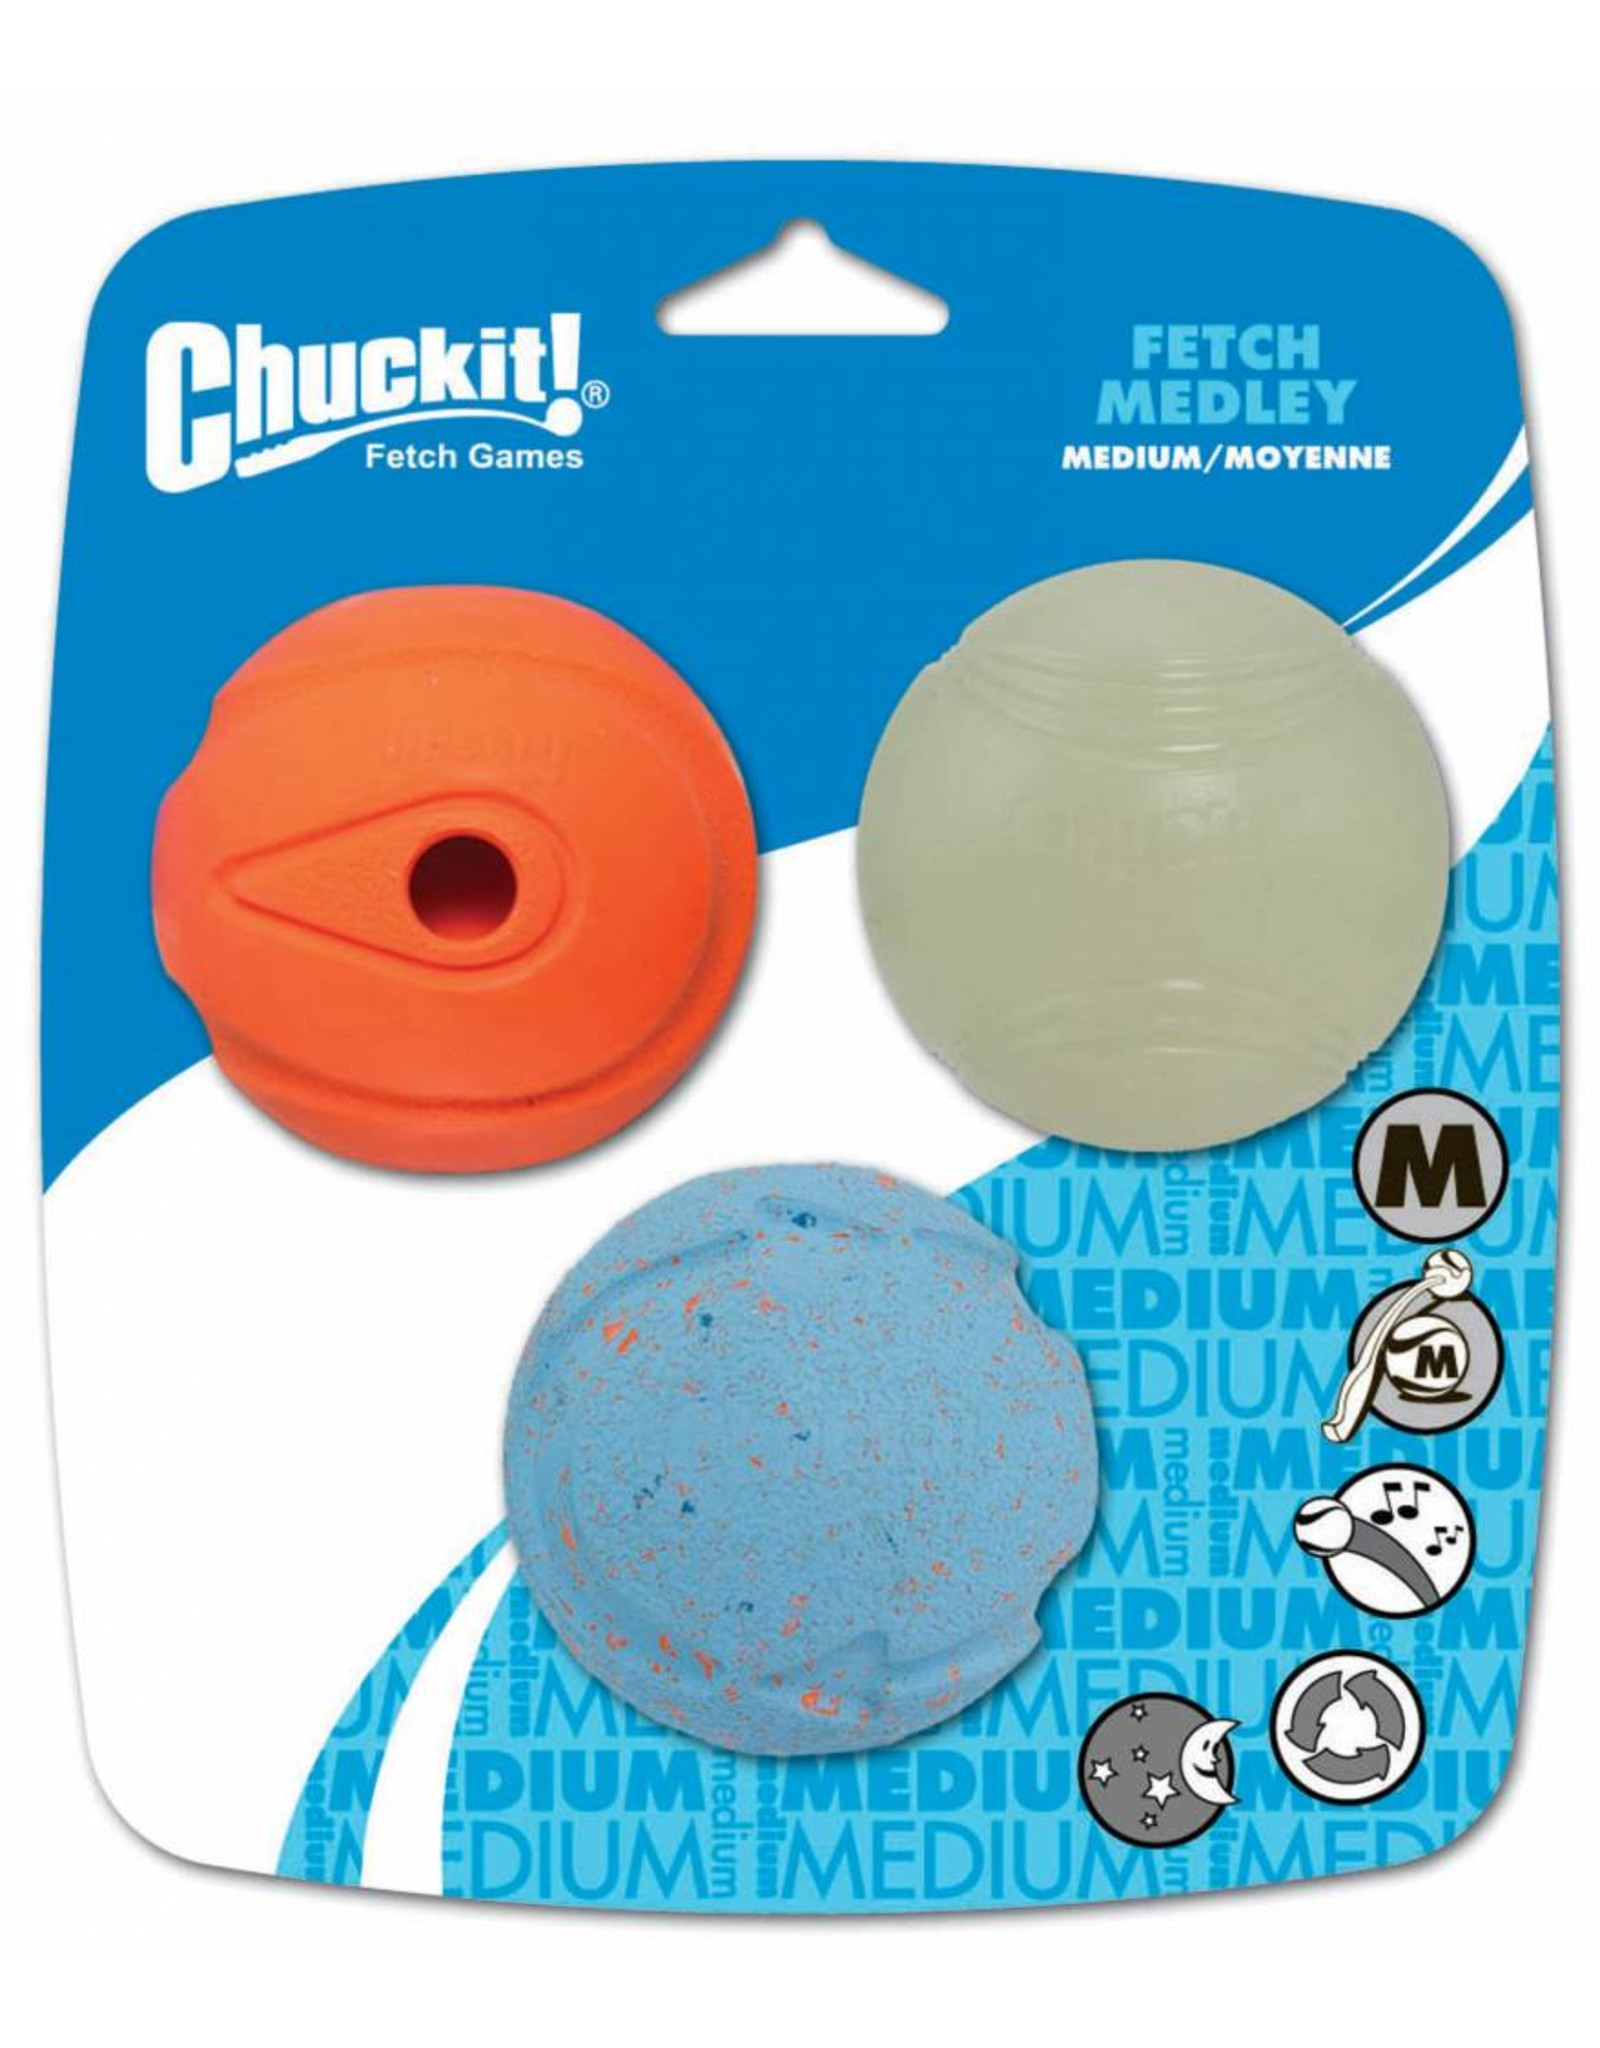 Chuckit Fetch Medley Assorted Balls Dog Toy Medium 6.5cm, 3 pack